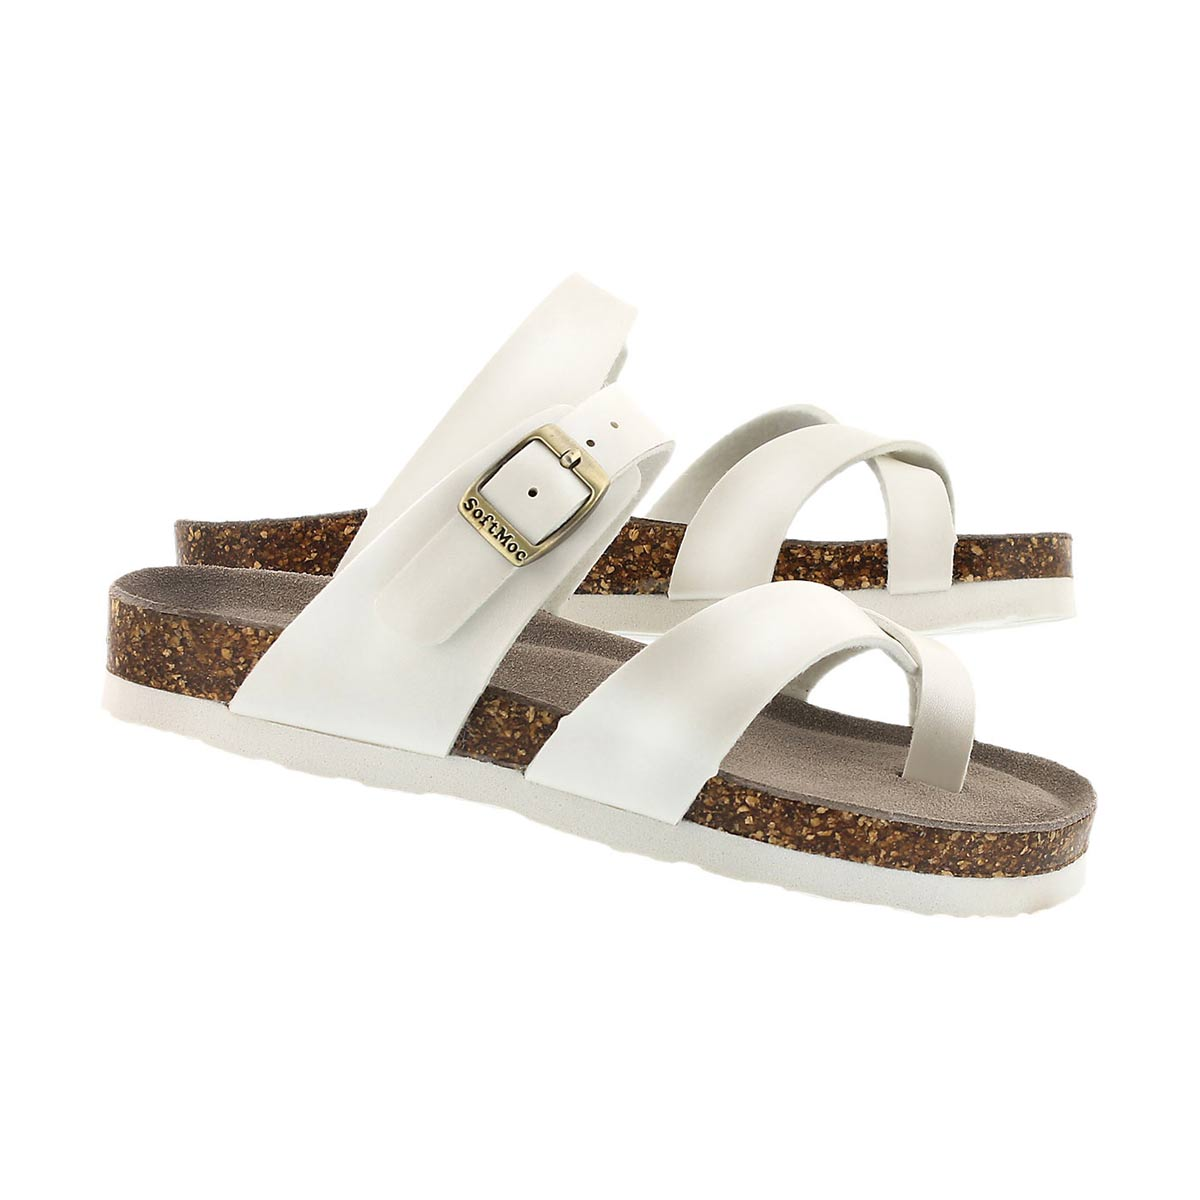 Grls Alicia moonstone toe loop sandal